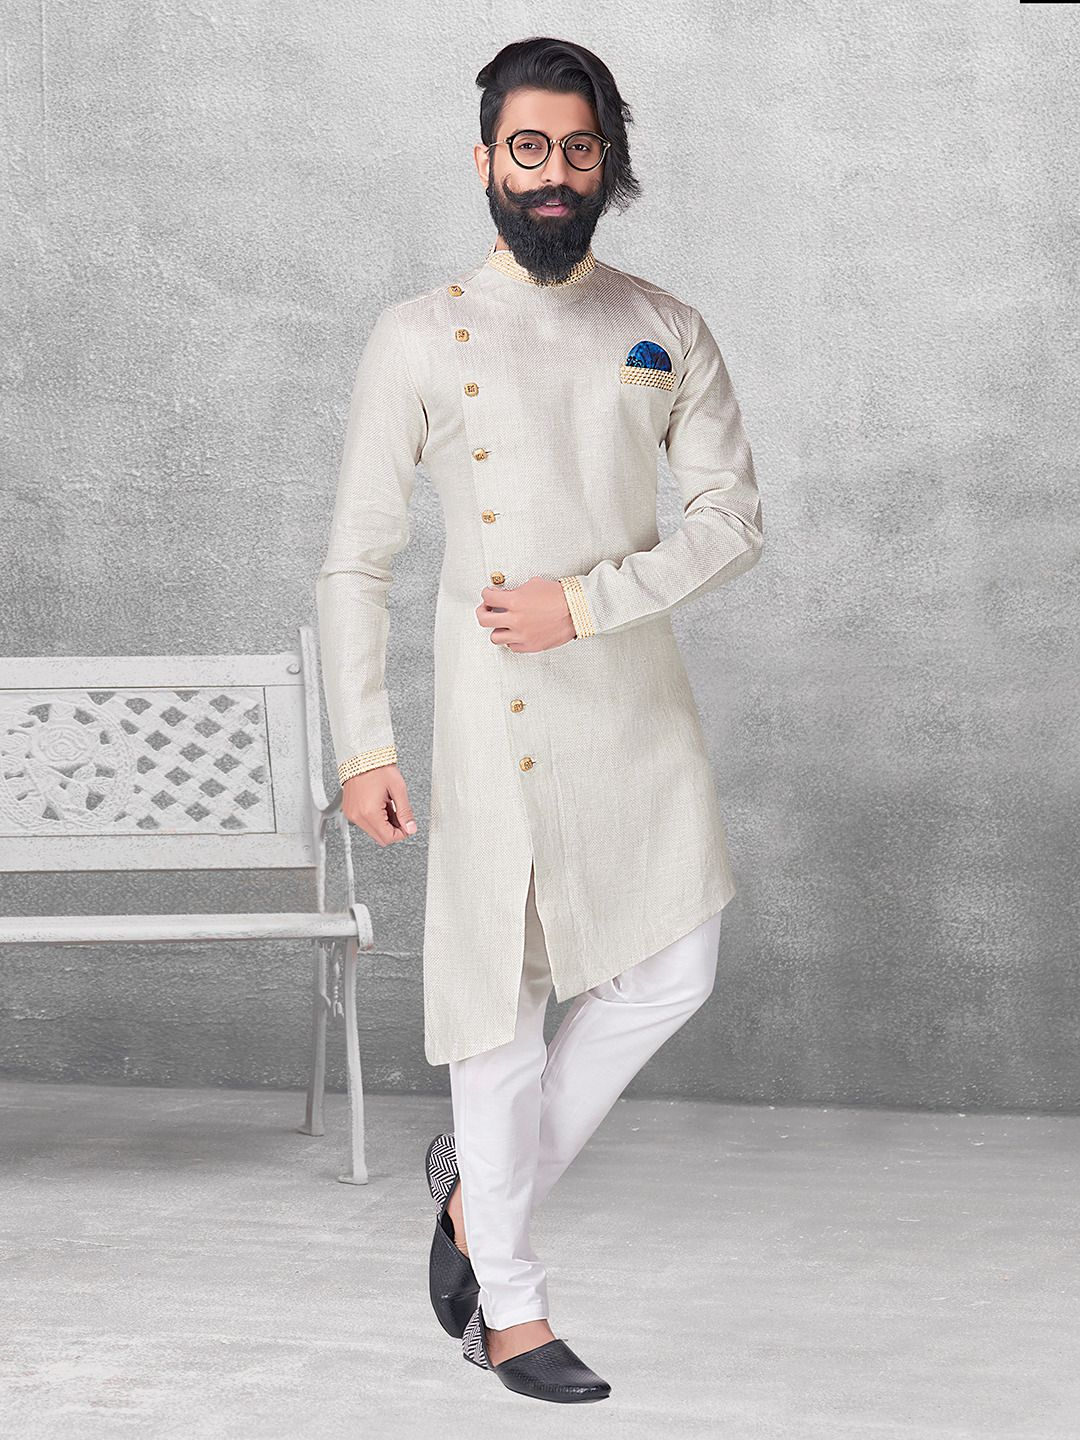 8d70f8590f3a7 Shop Cream color silk kurta suit online from G3fashion India. Brand - G3